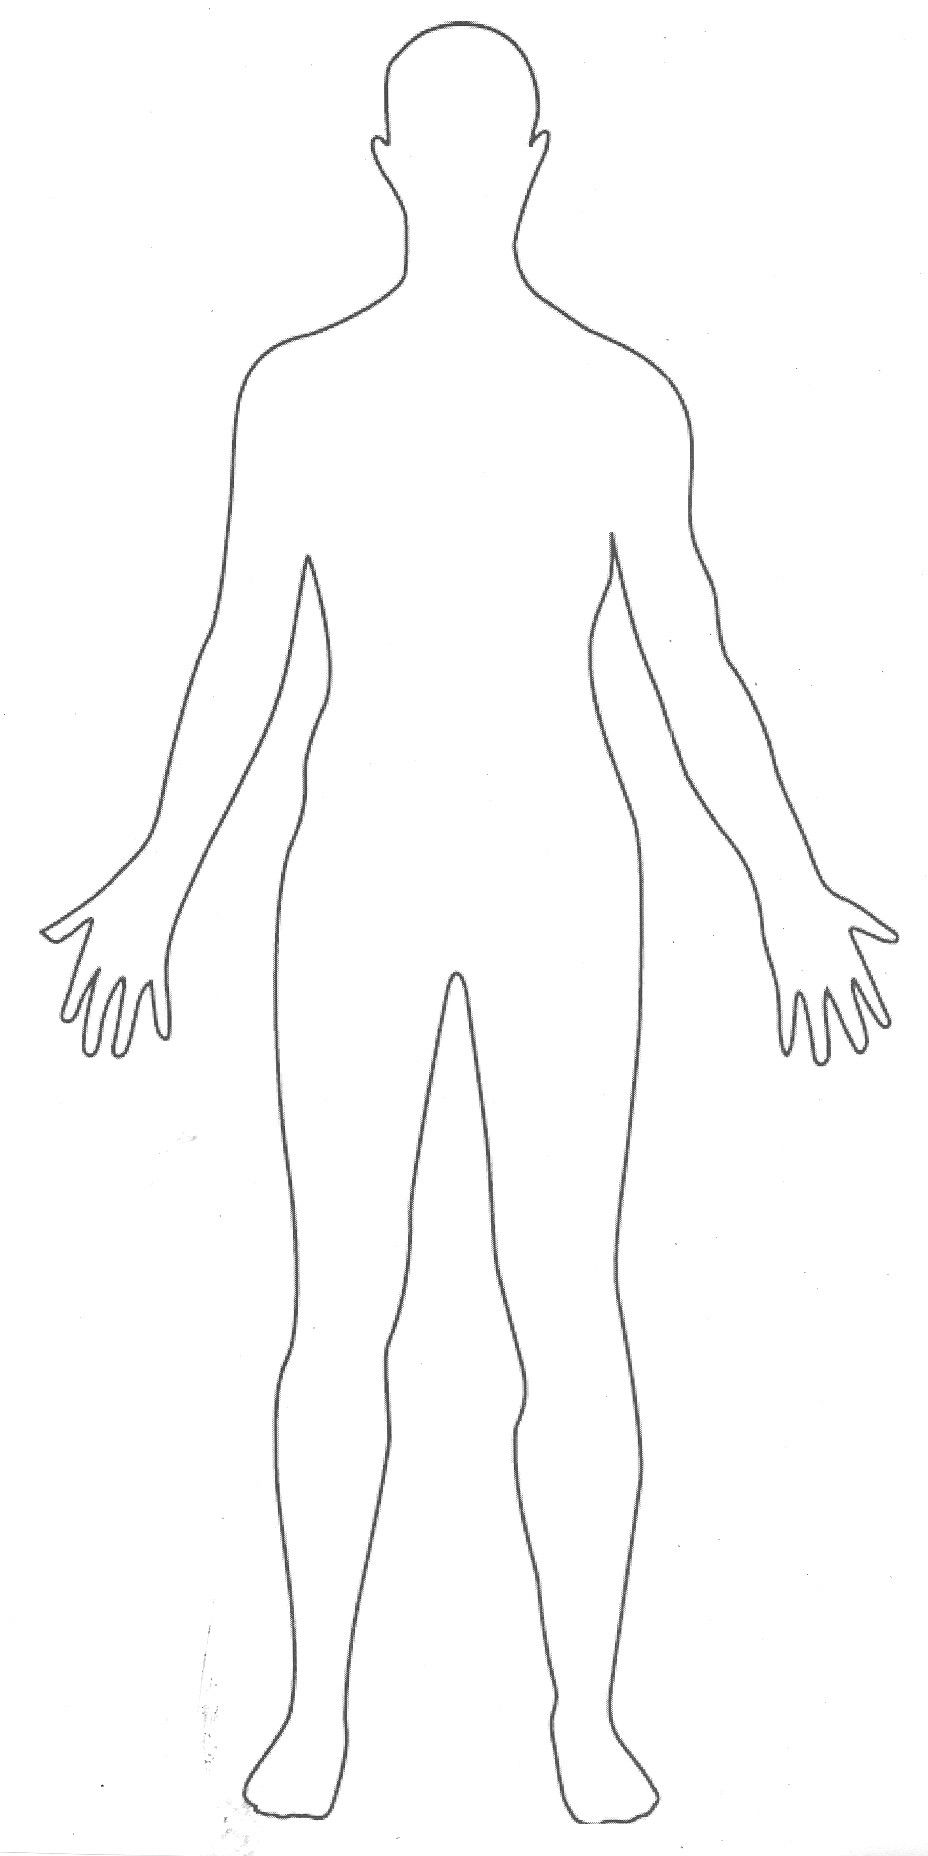 outline sketch of human body